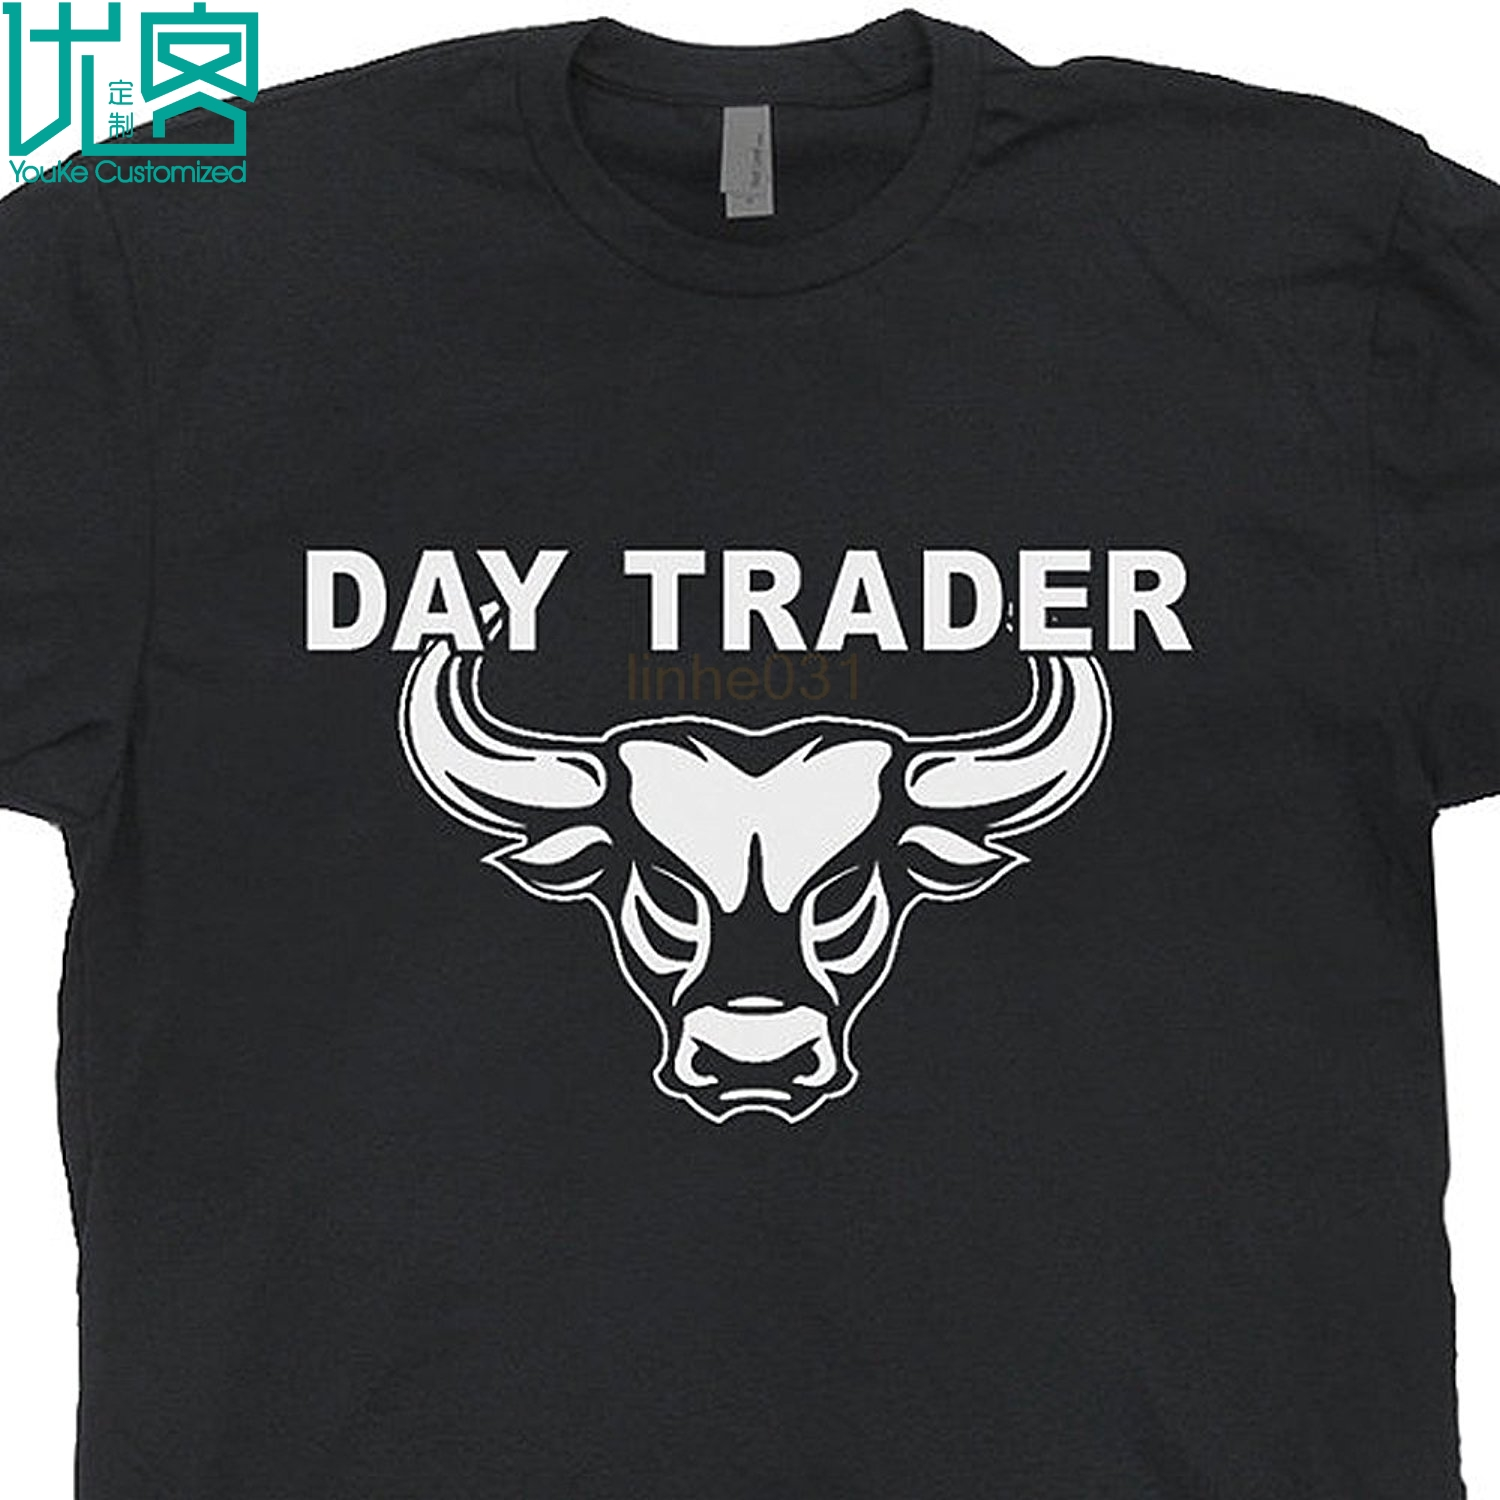 2018 Day Trader T Shirt Bitcoin Shirts Wall Street Mad Stock Market Money Trading Tshirt Forex Book Guide Wall Street Bull Tee image